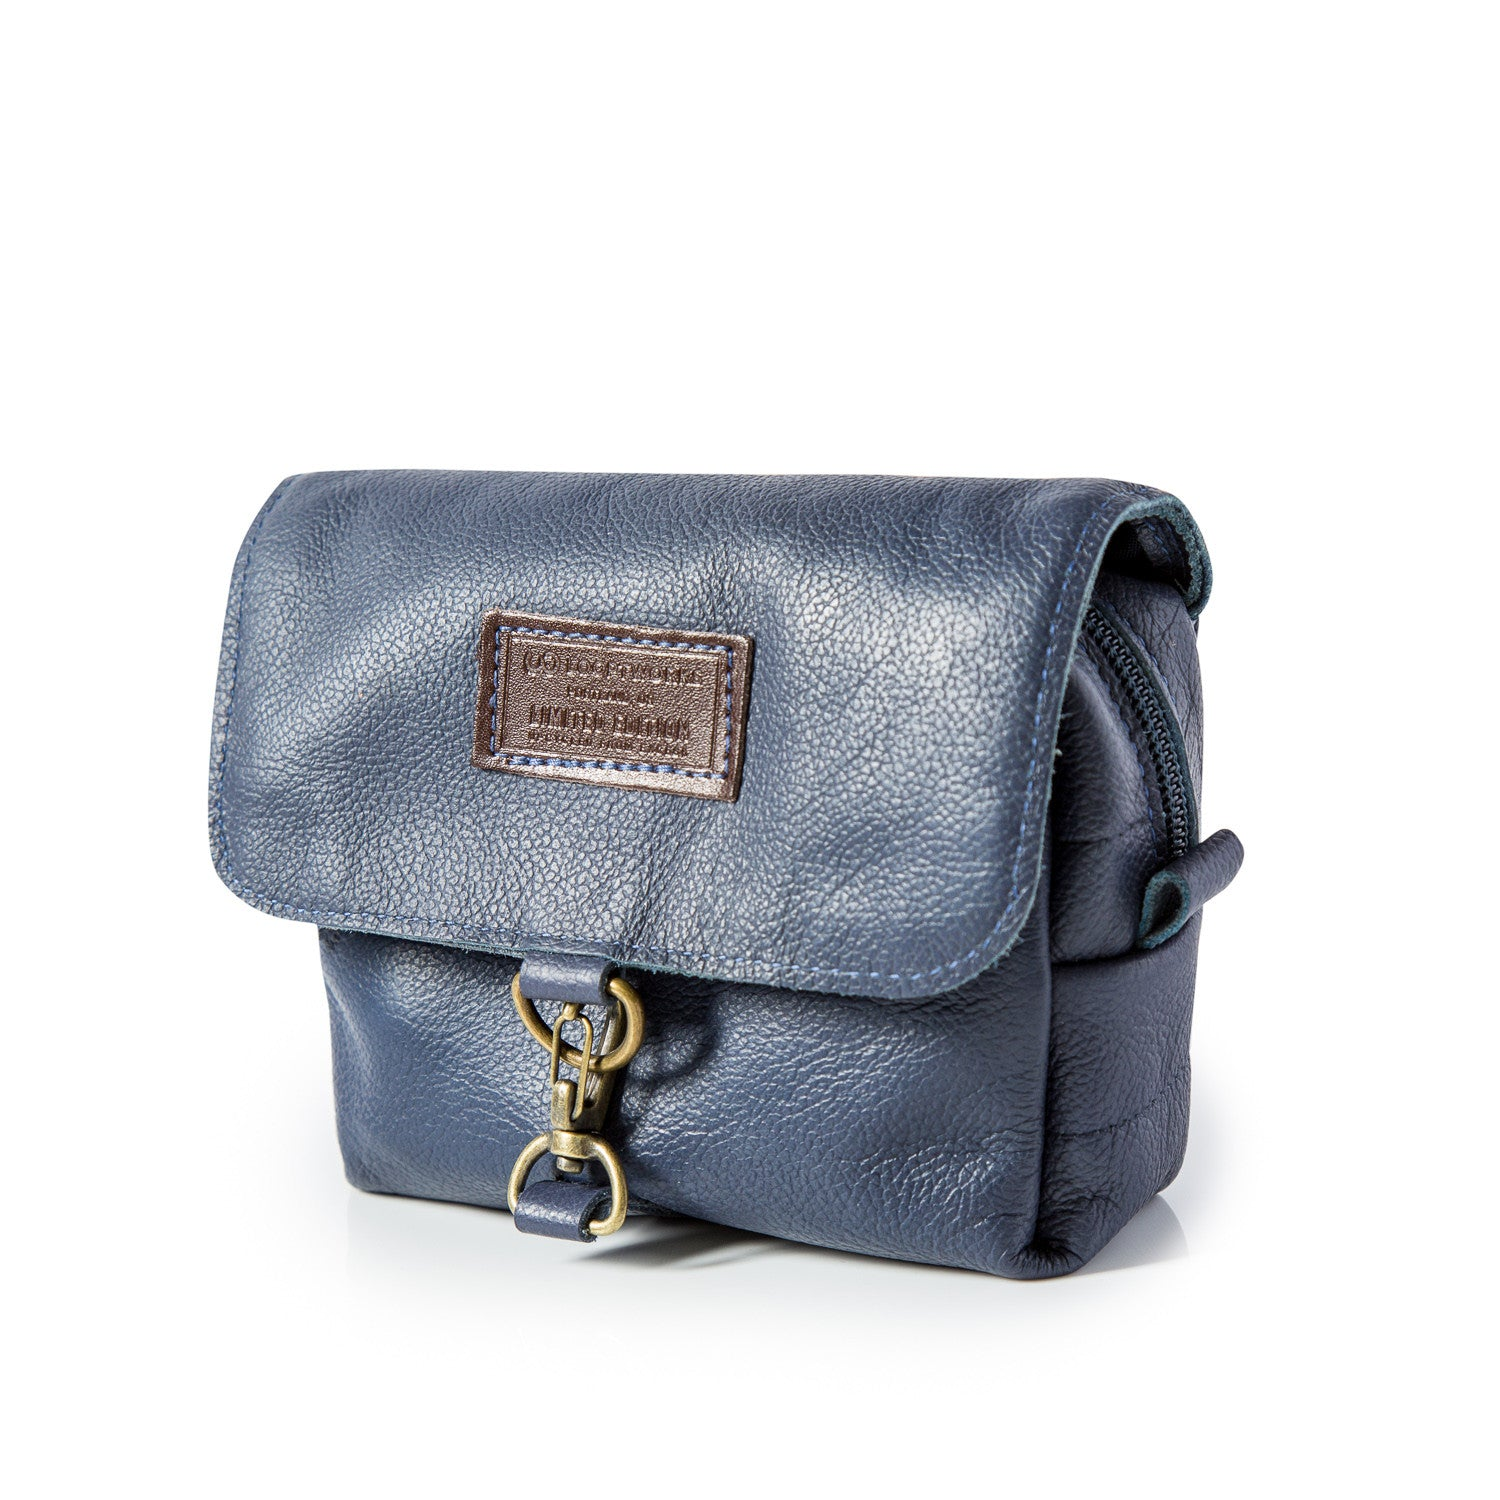 Mini Toiletry Bag Made From Recycled Southwest Airlines Leather Seat Covers